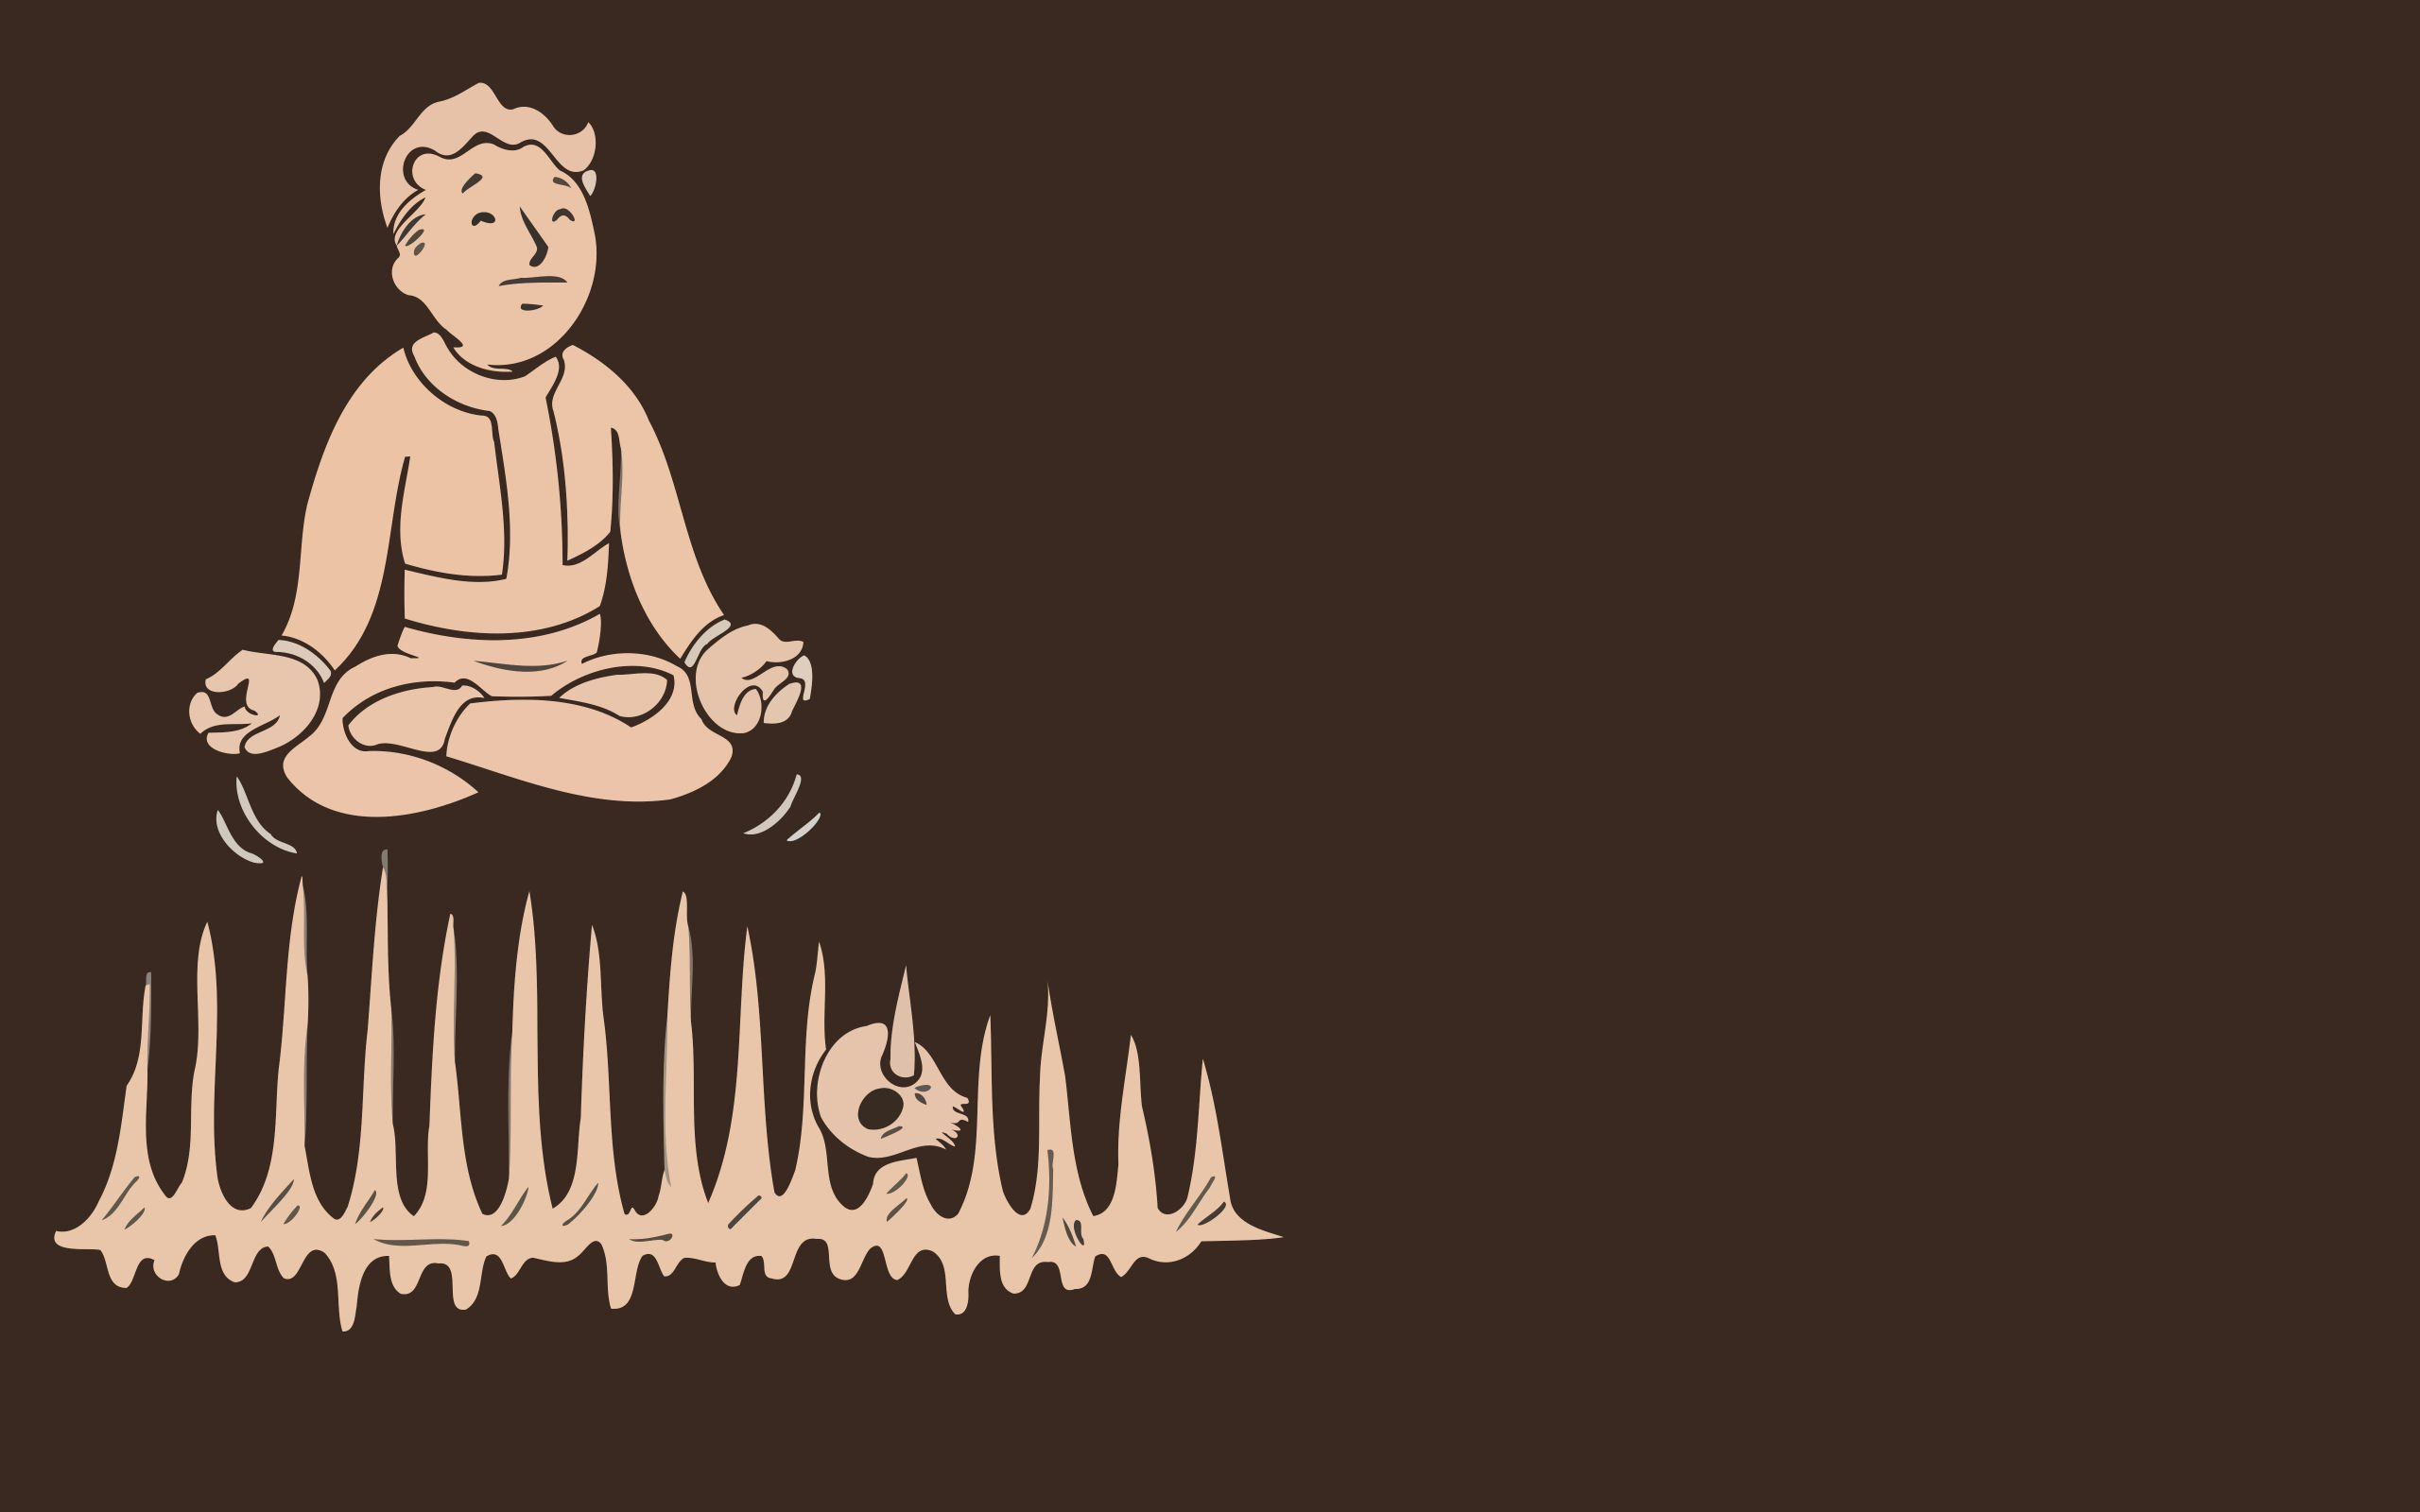 video games minimalistic Fallout brown Vault Boy simplistic simple pip boy